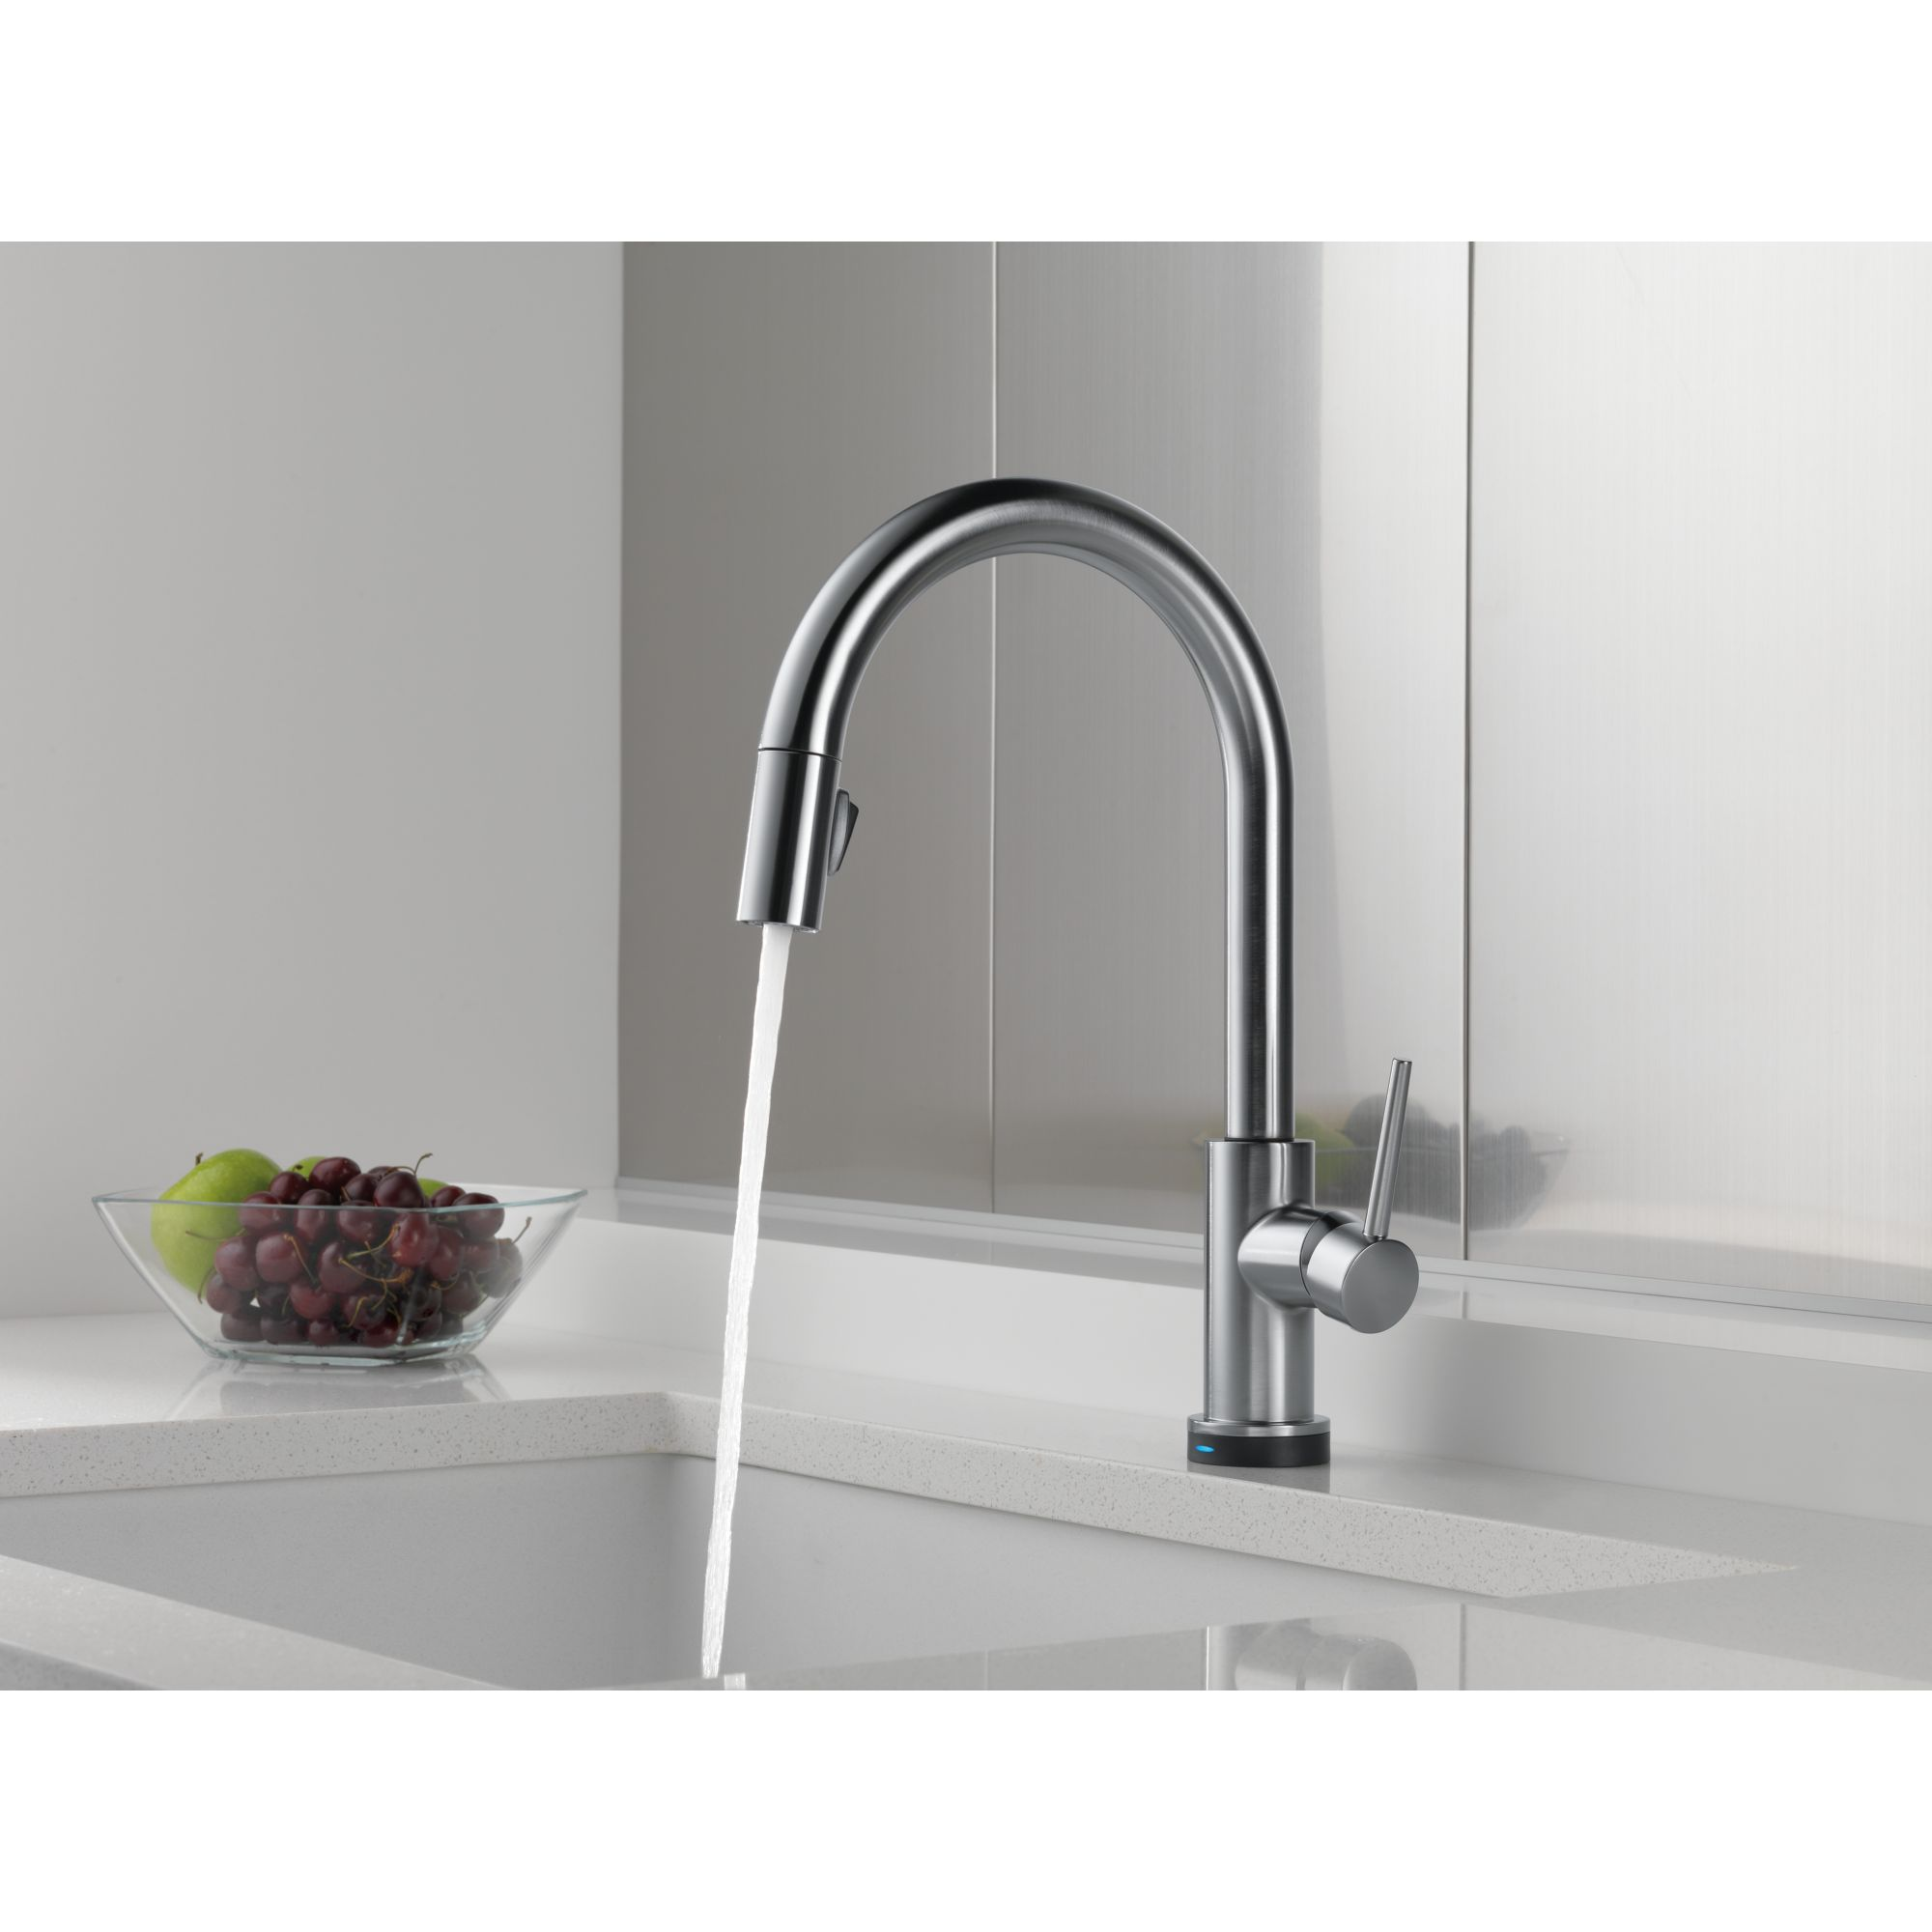 Magnificent delta cassidy kitchen faucet for kitchen faucet ideas with delta single handle kitchen faucet with spray